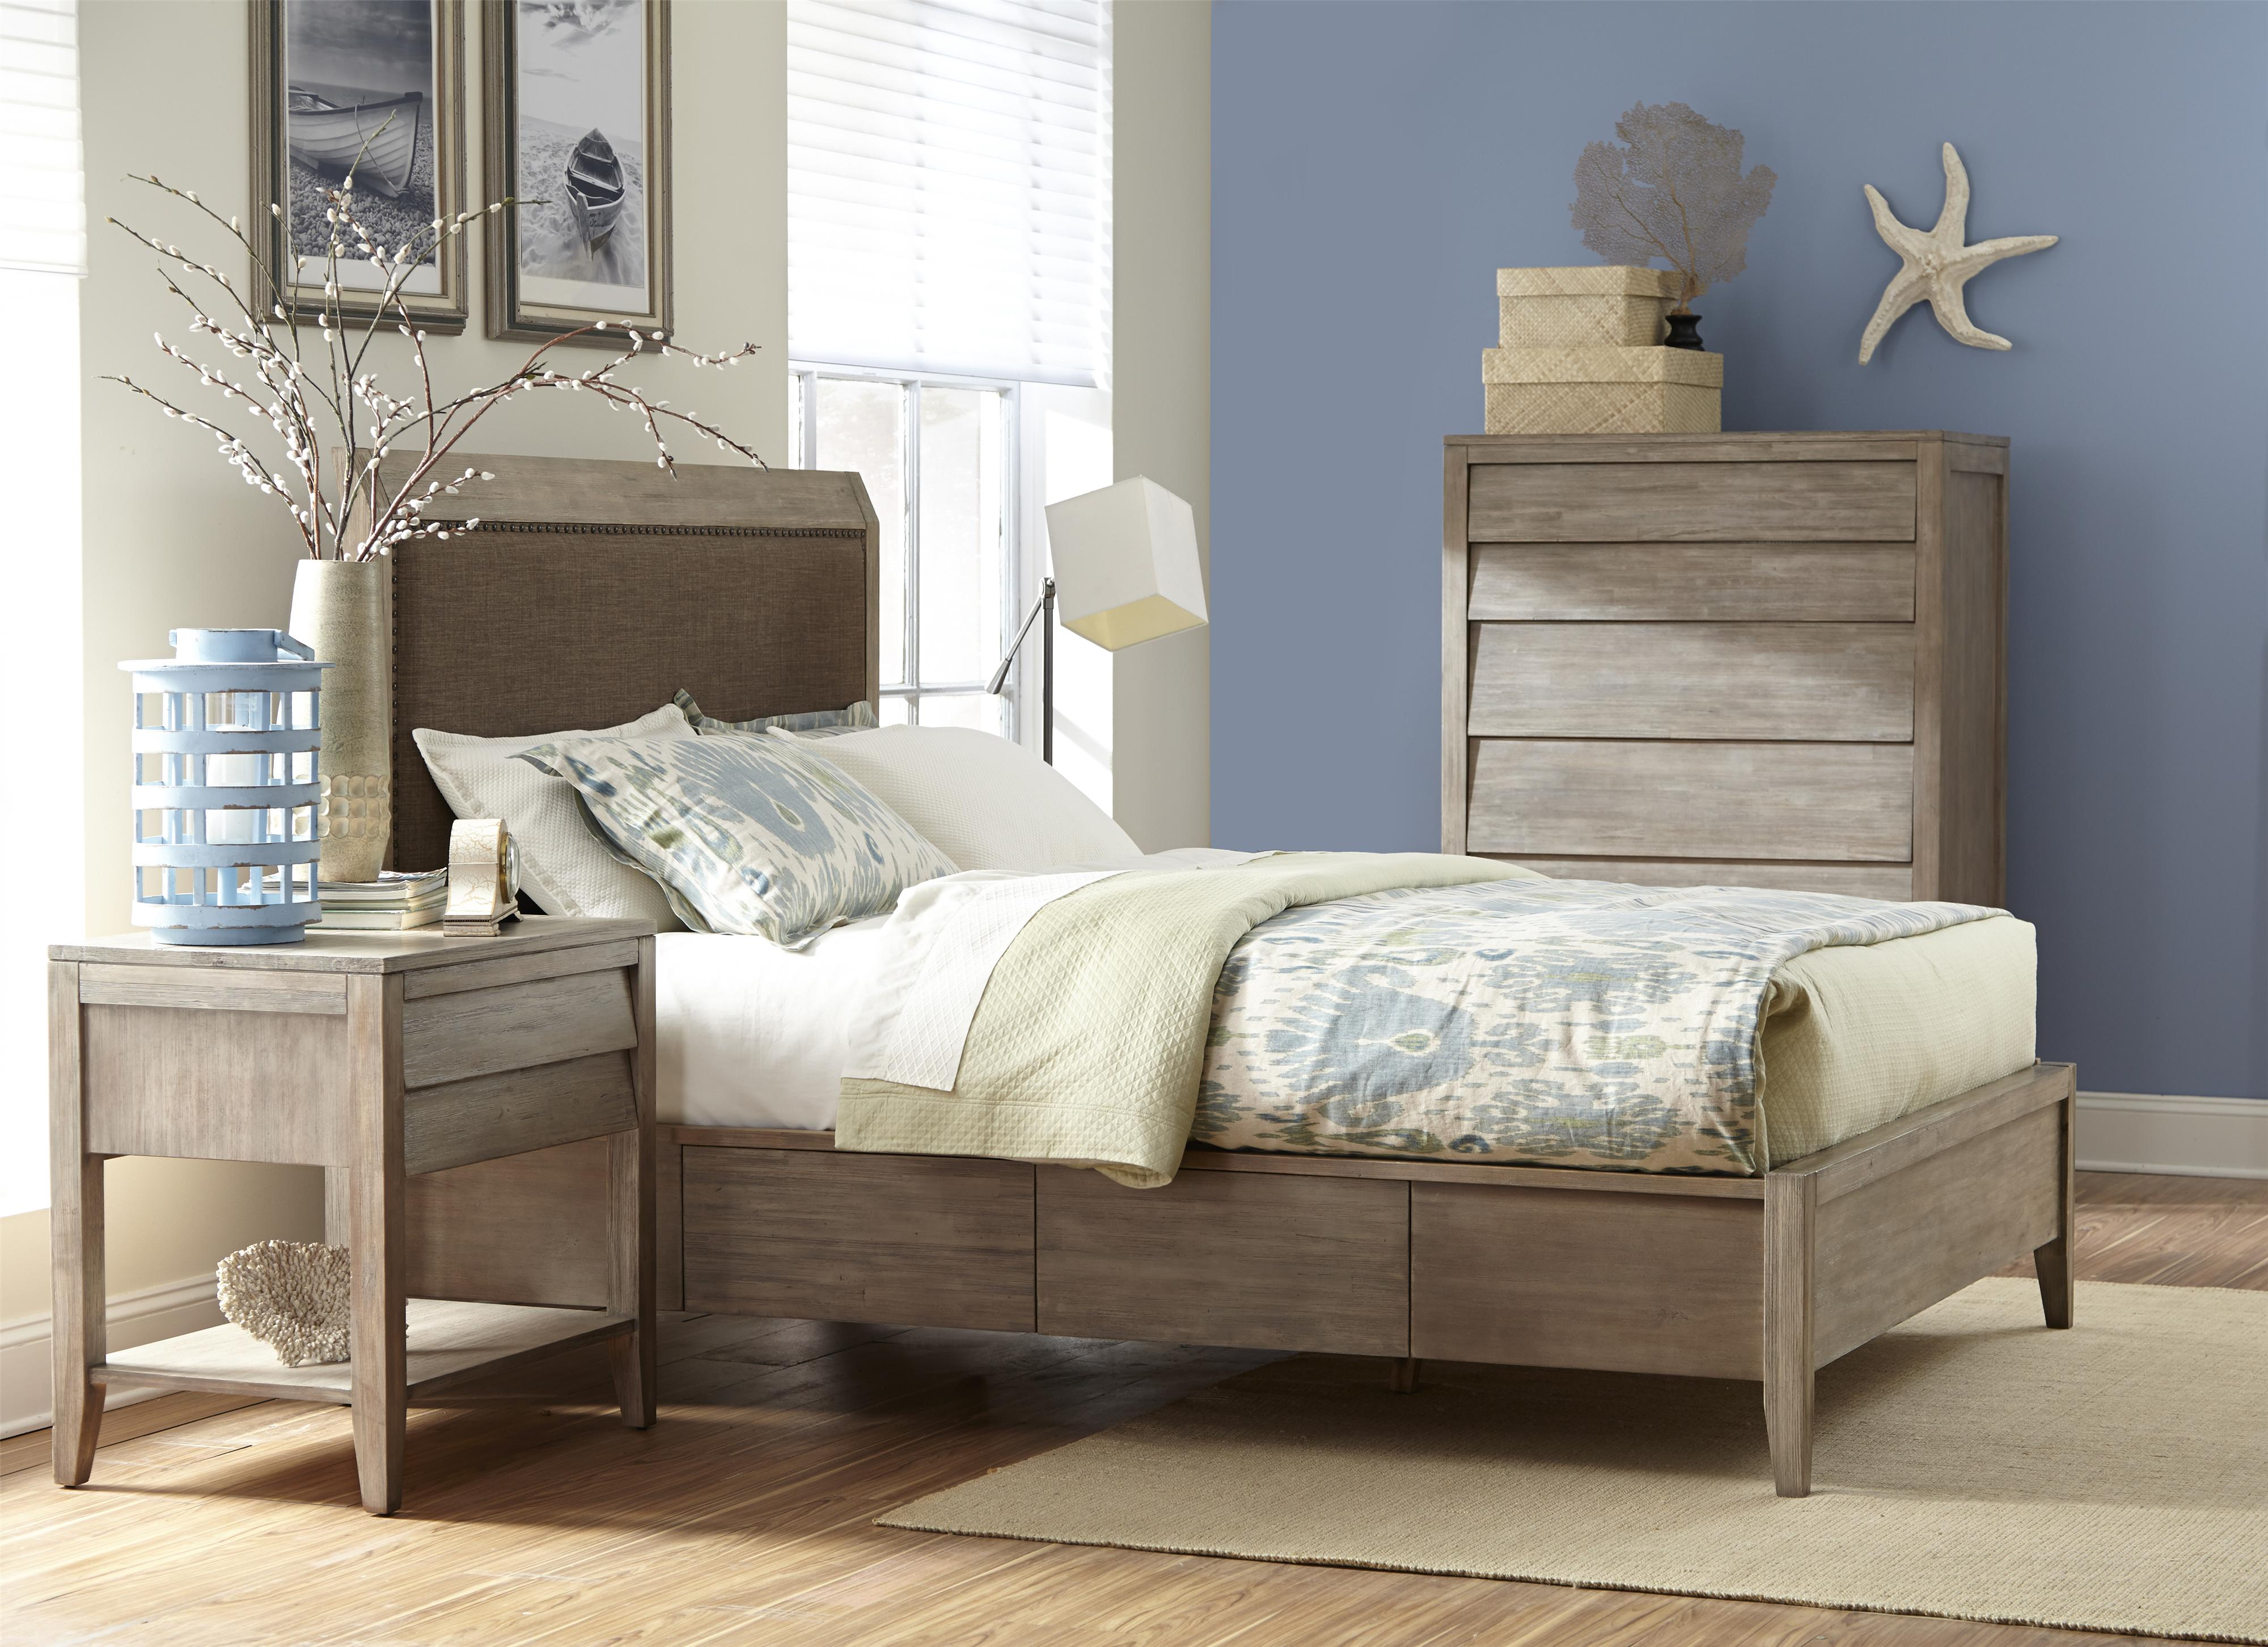 Cresent Fine Furniture Corliss Landing Queen Bedroom Group - Item Number: 5600 Q Bedroom Group 1